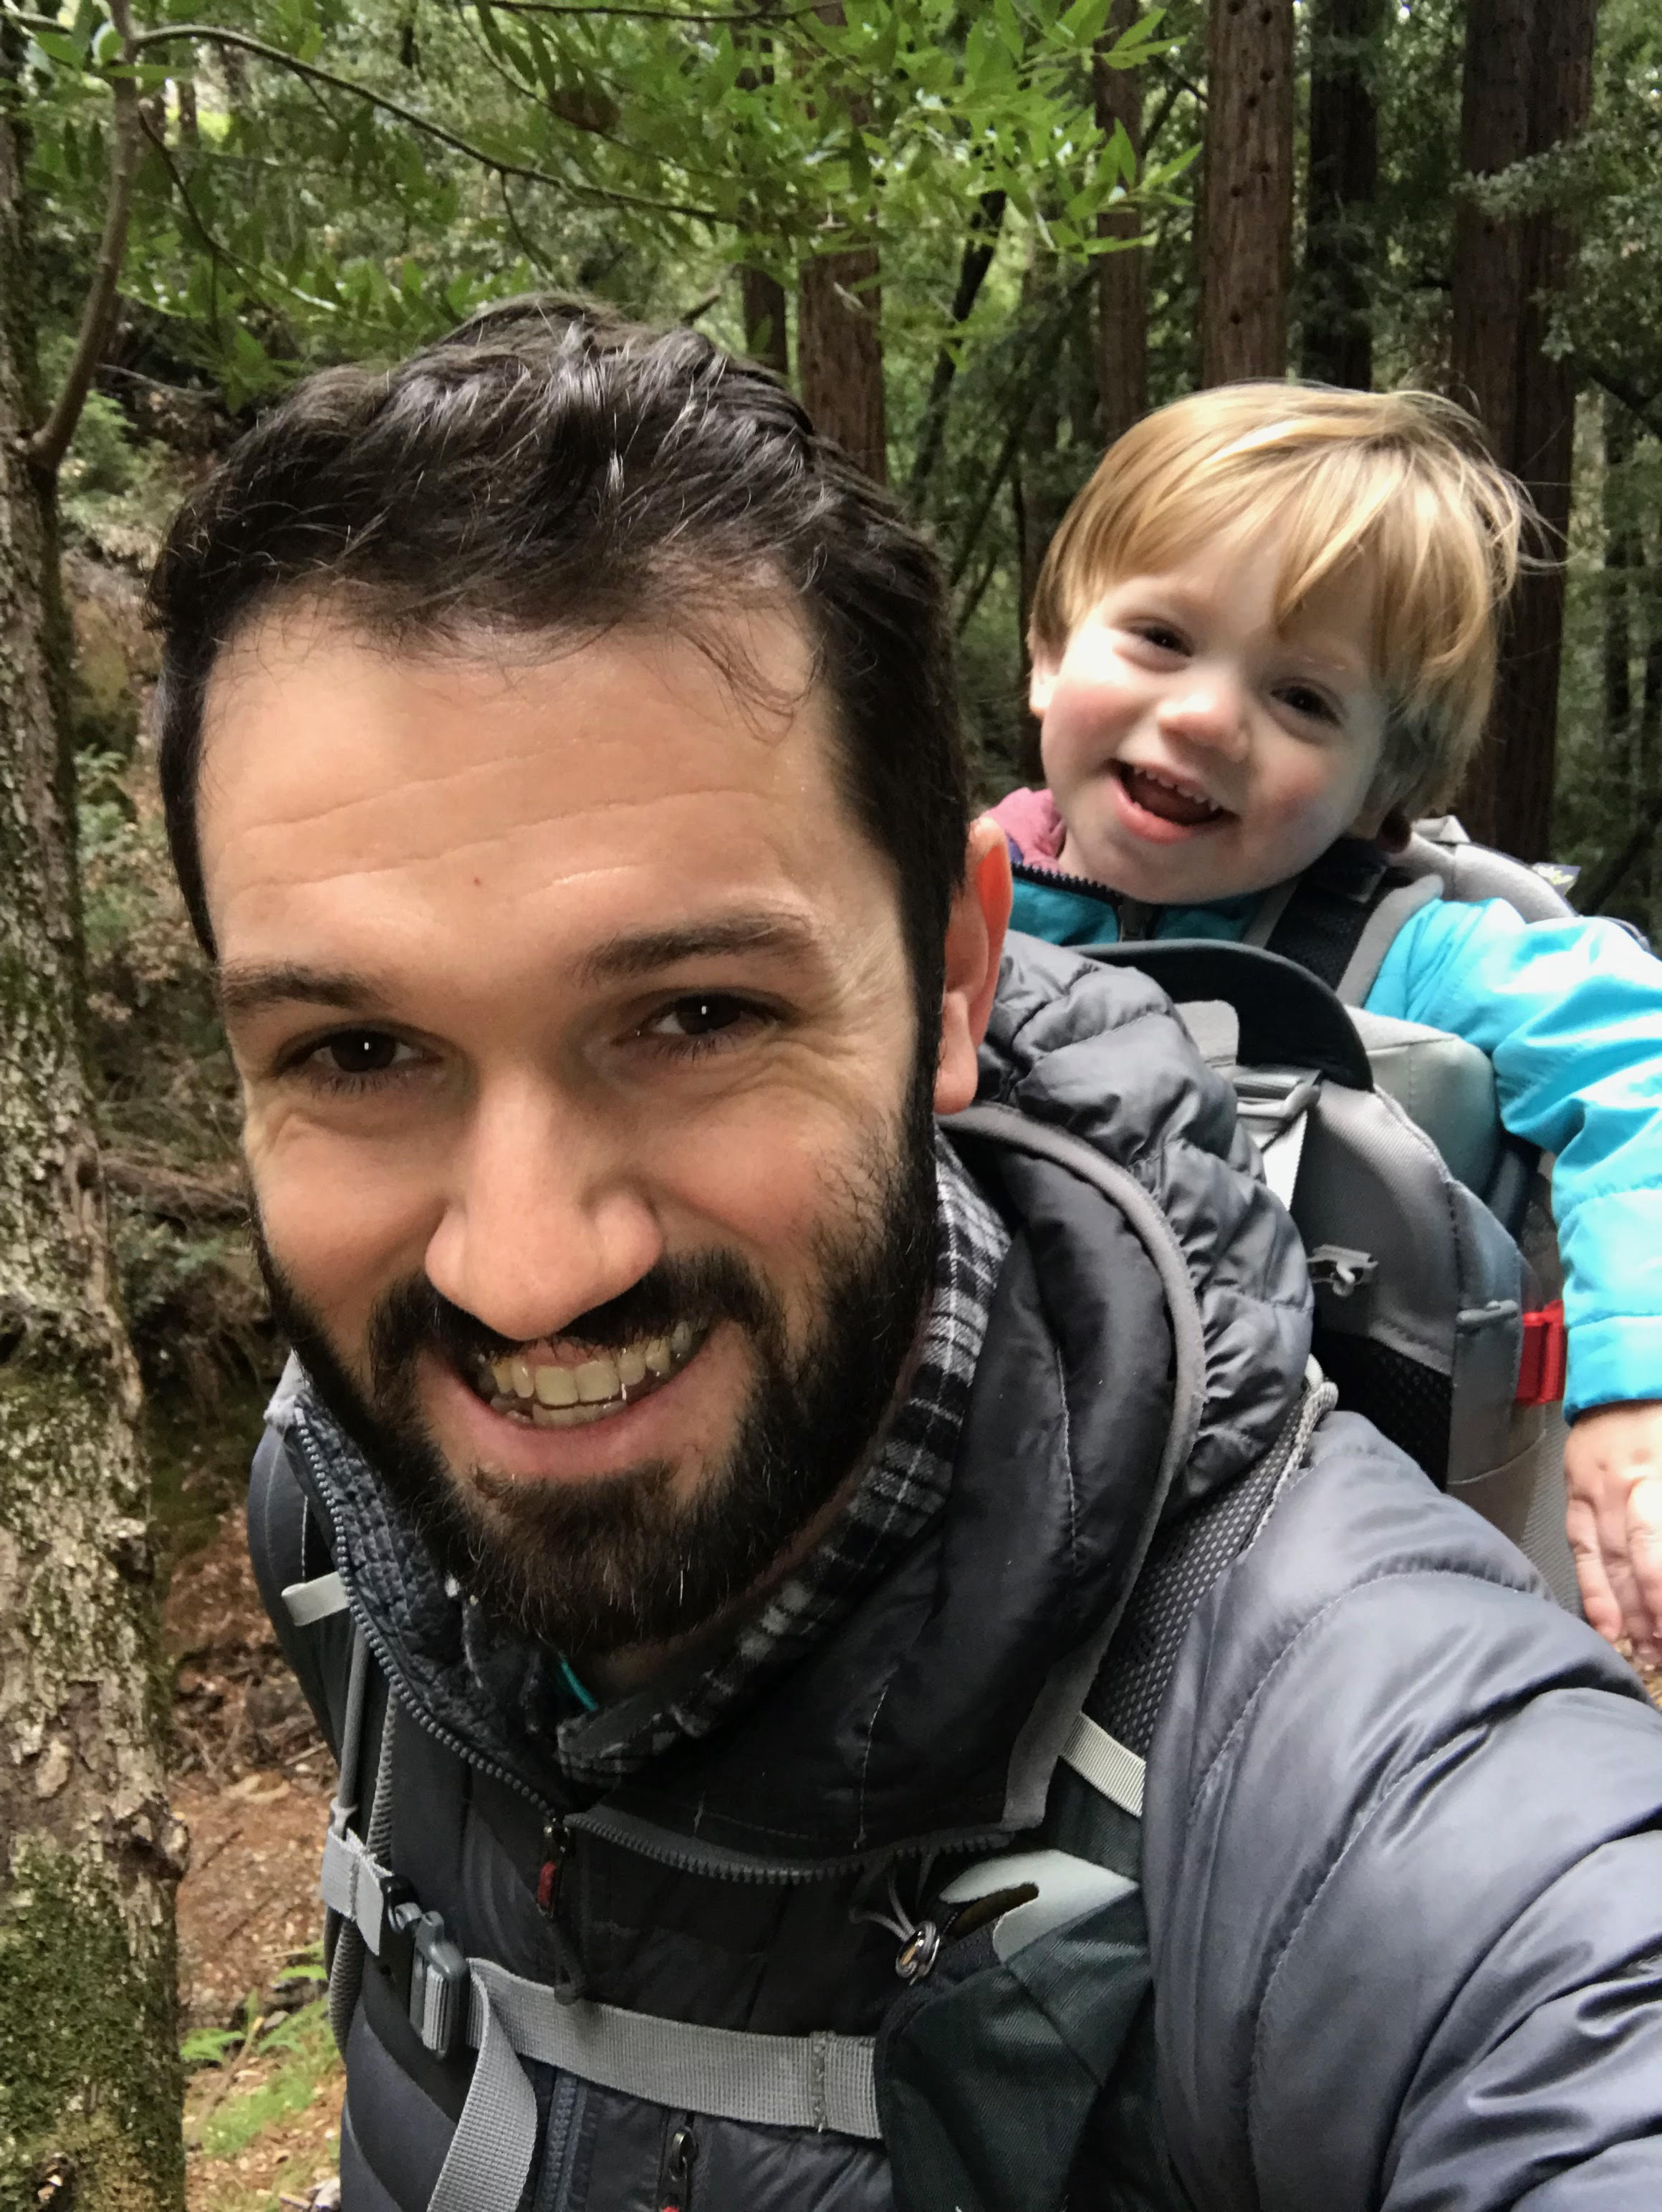 DJ going on a hike with his son, Maguire.